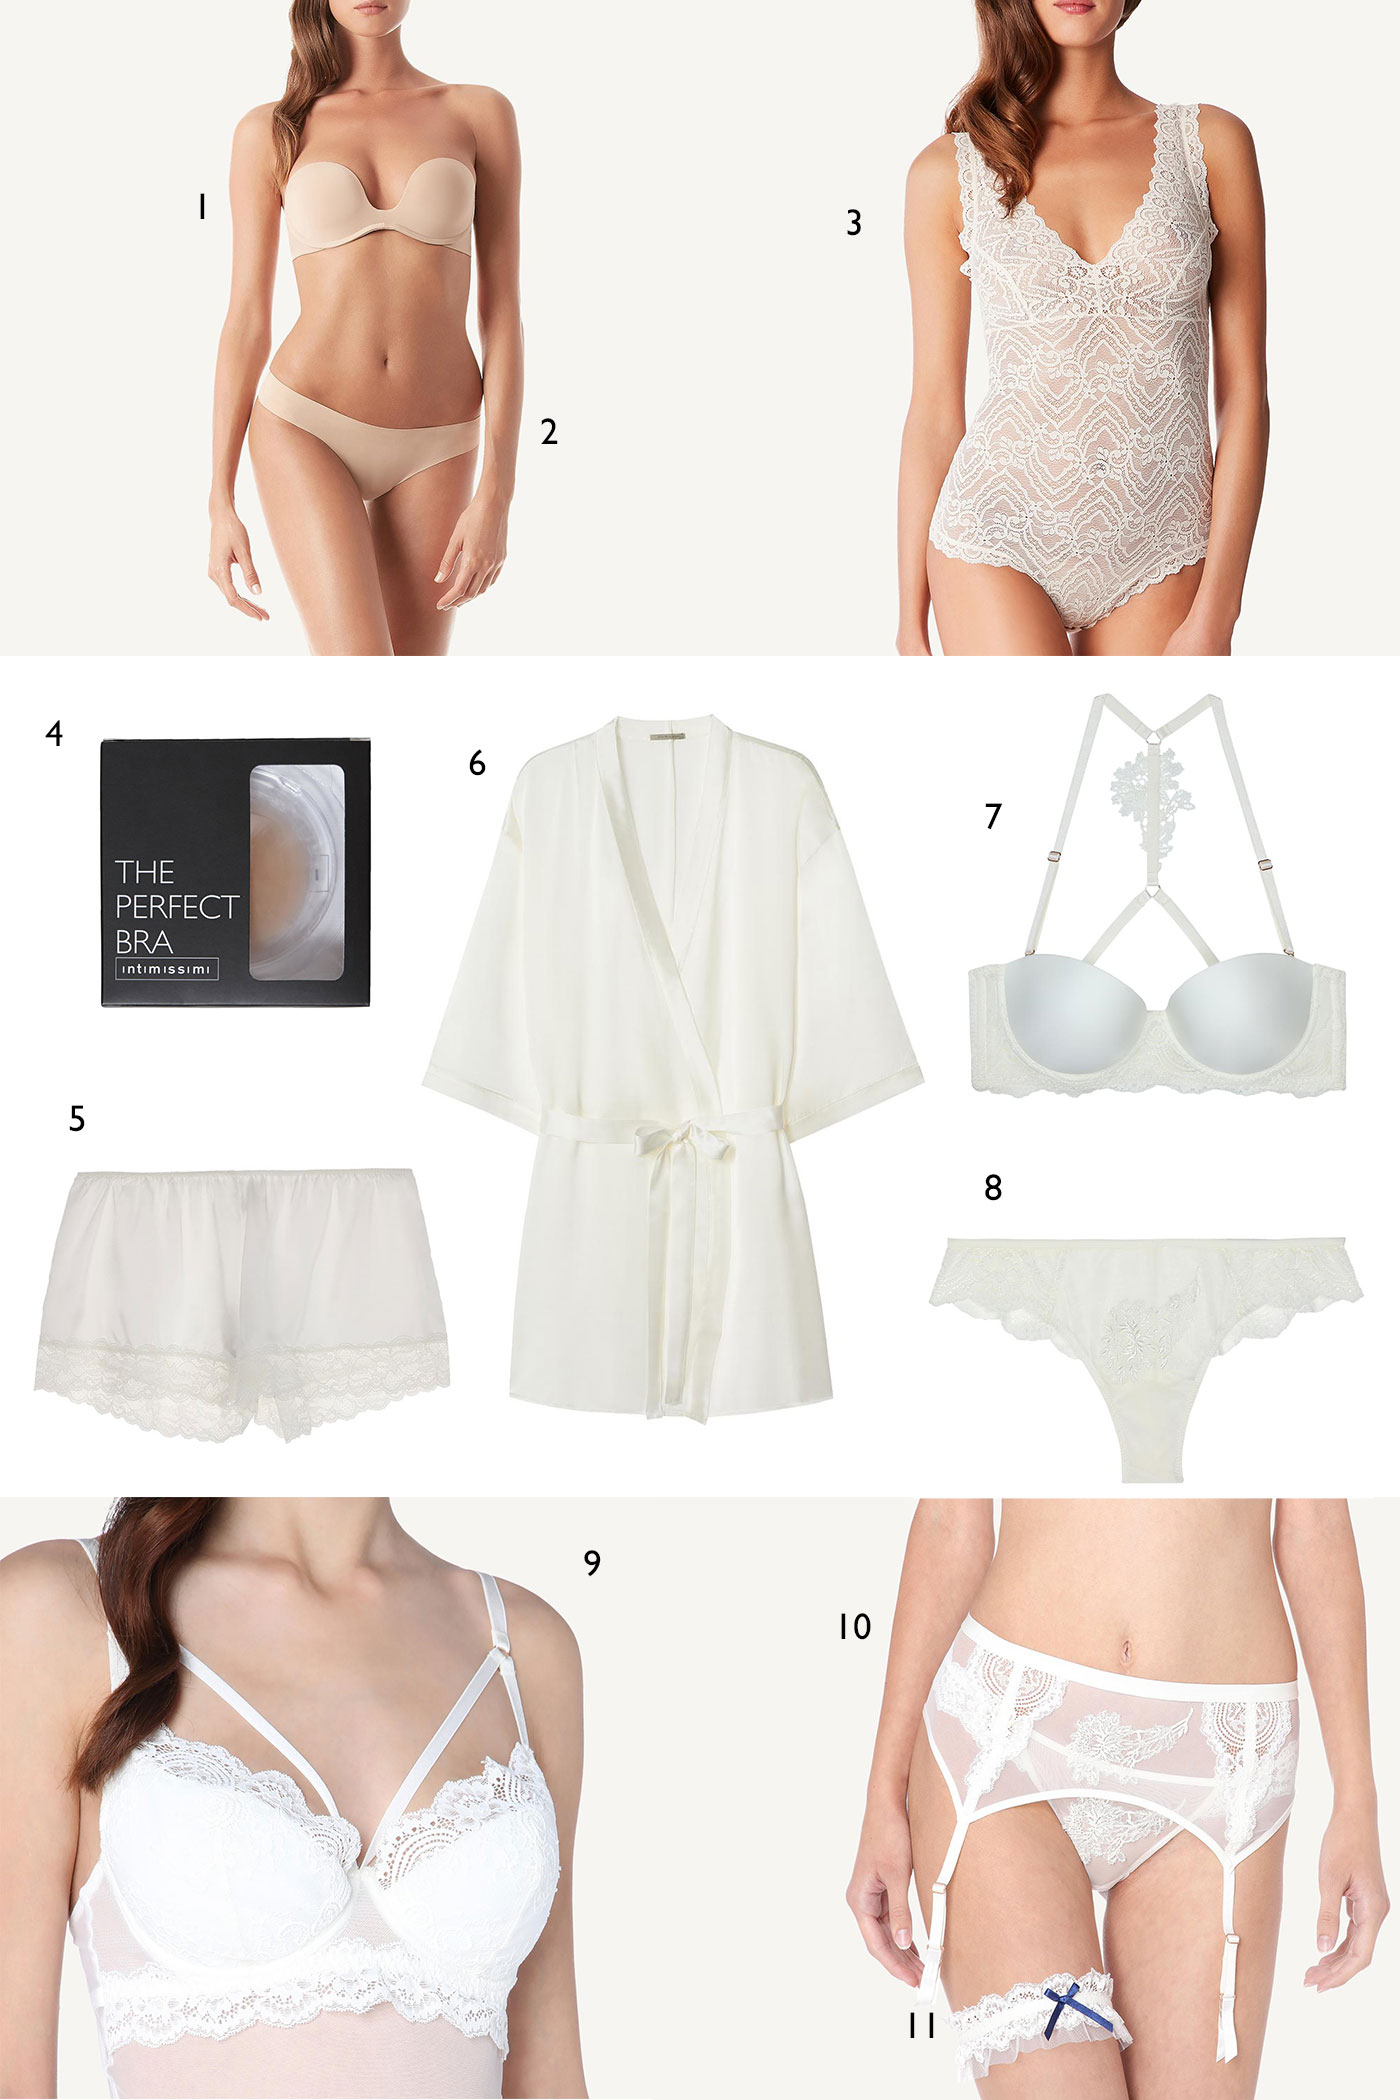 Bridal Lingerie for the Wedding Day